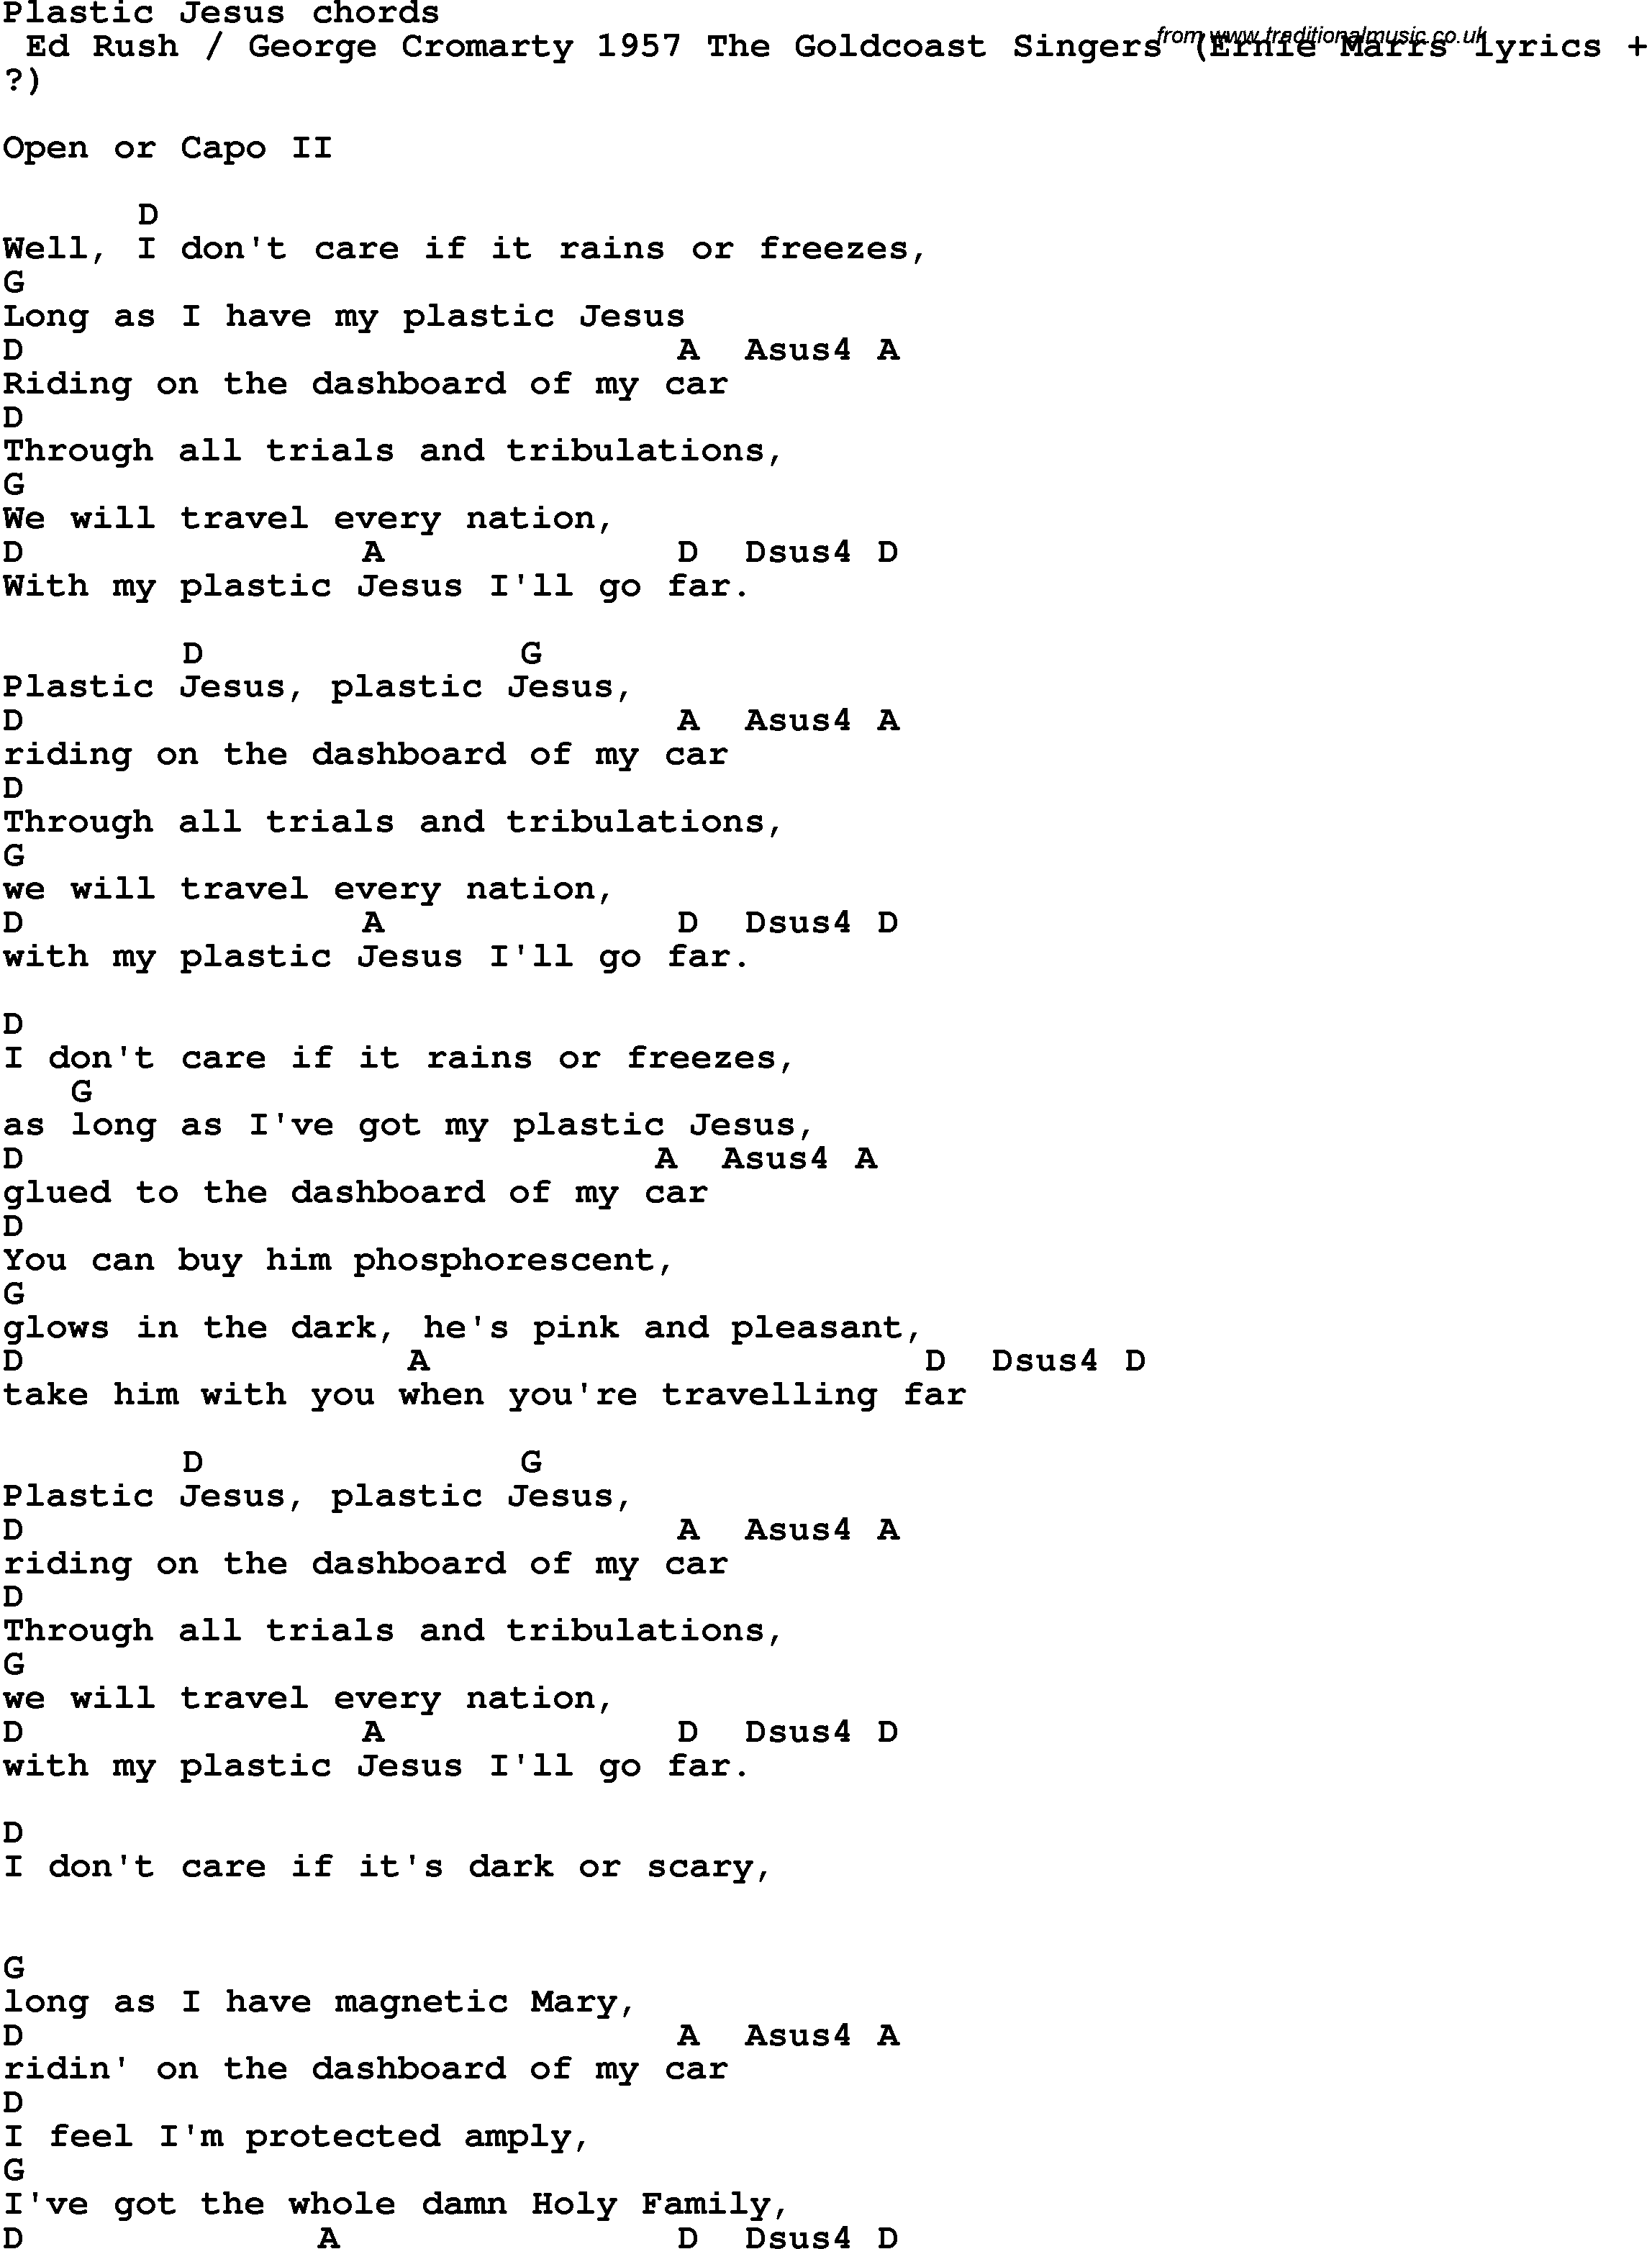 Song Lyrics With Guitar Chords For Plastic Jesus